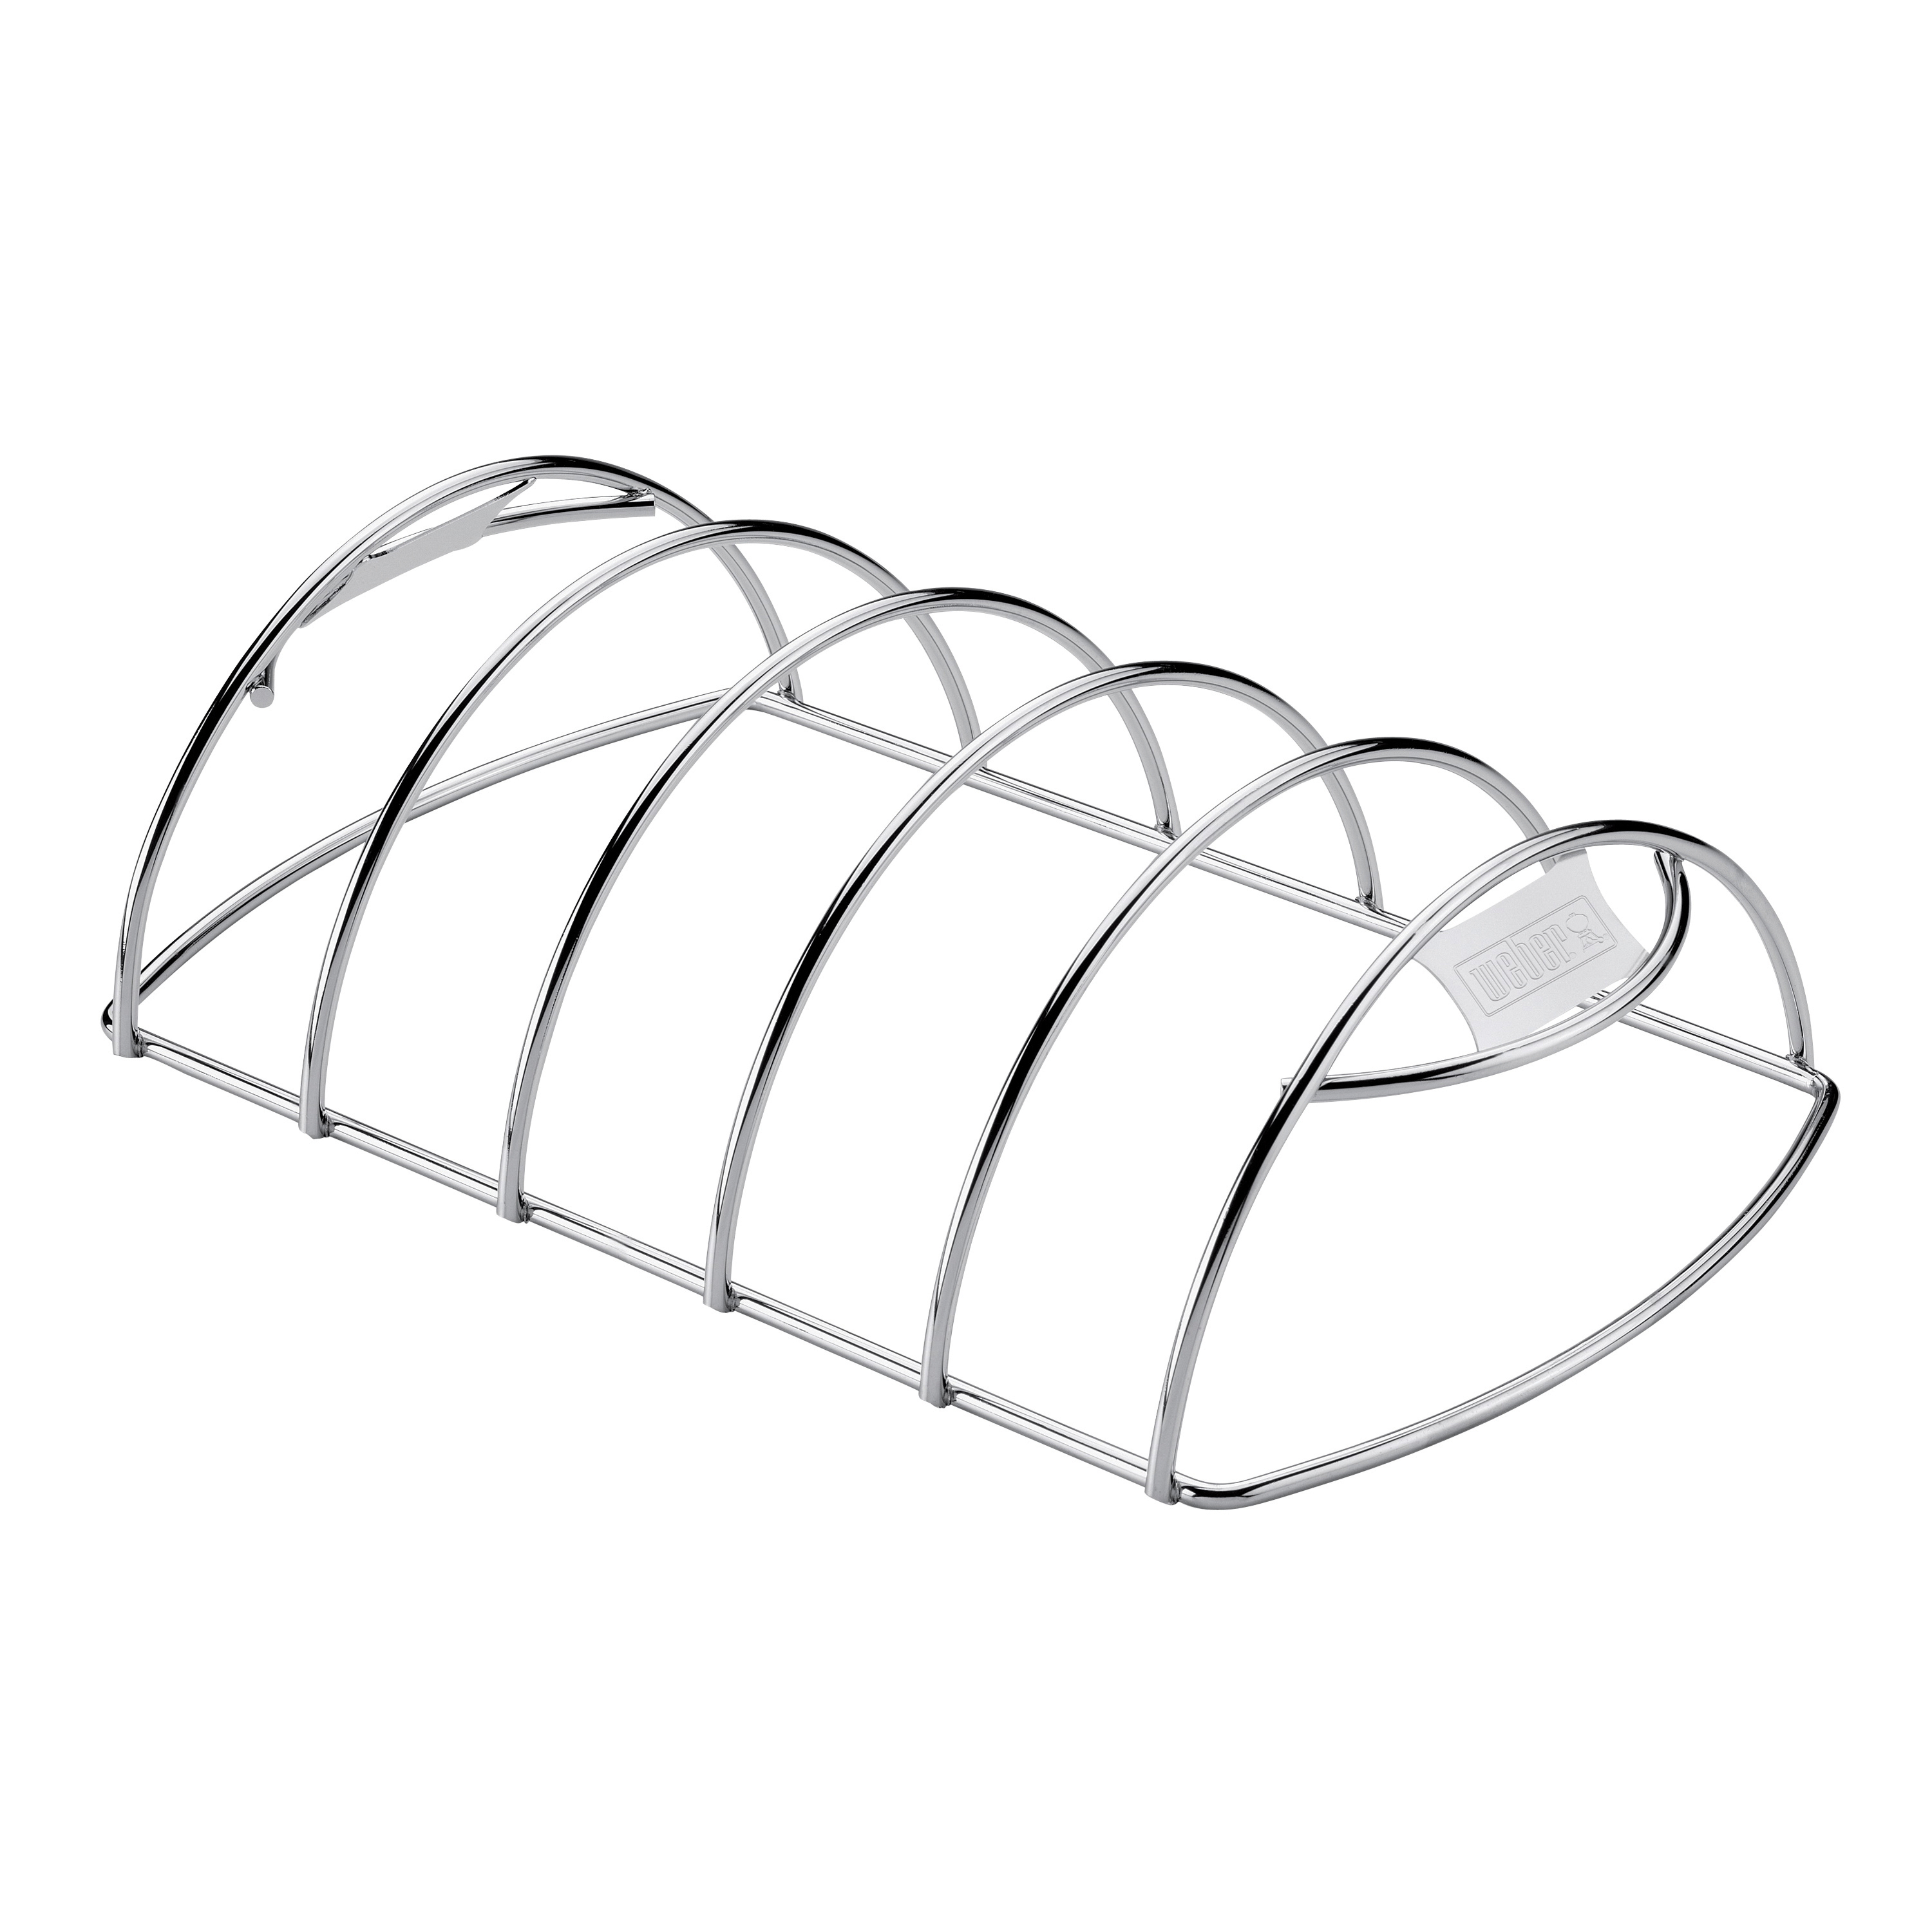 Picture of Weber 6605 Rib Rack, 13-13/64 in L, 8 in W, Steel, Chrome